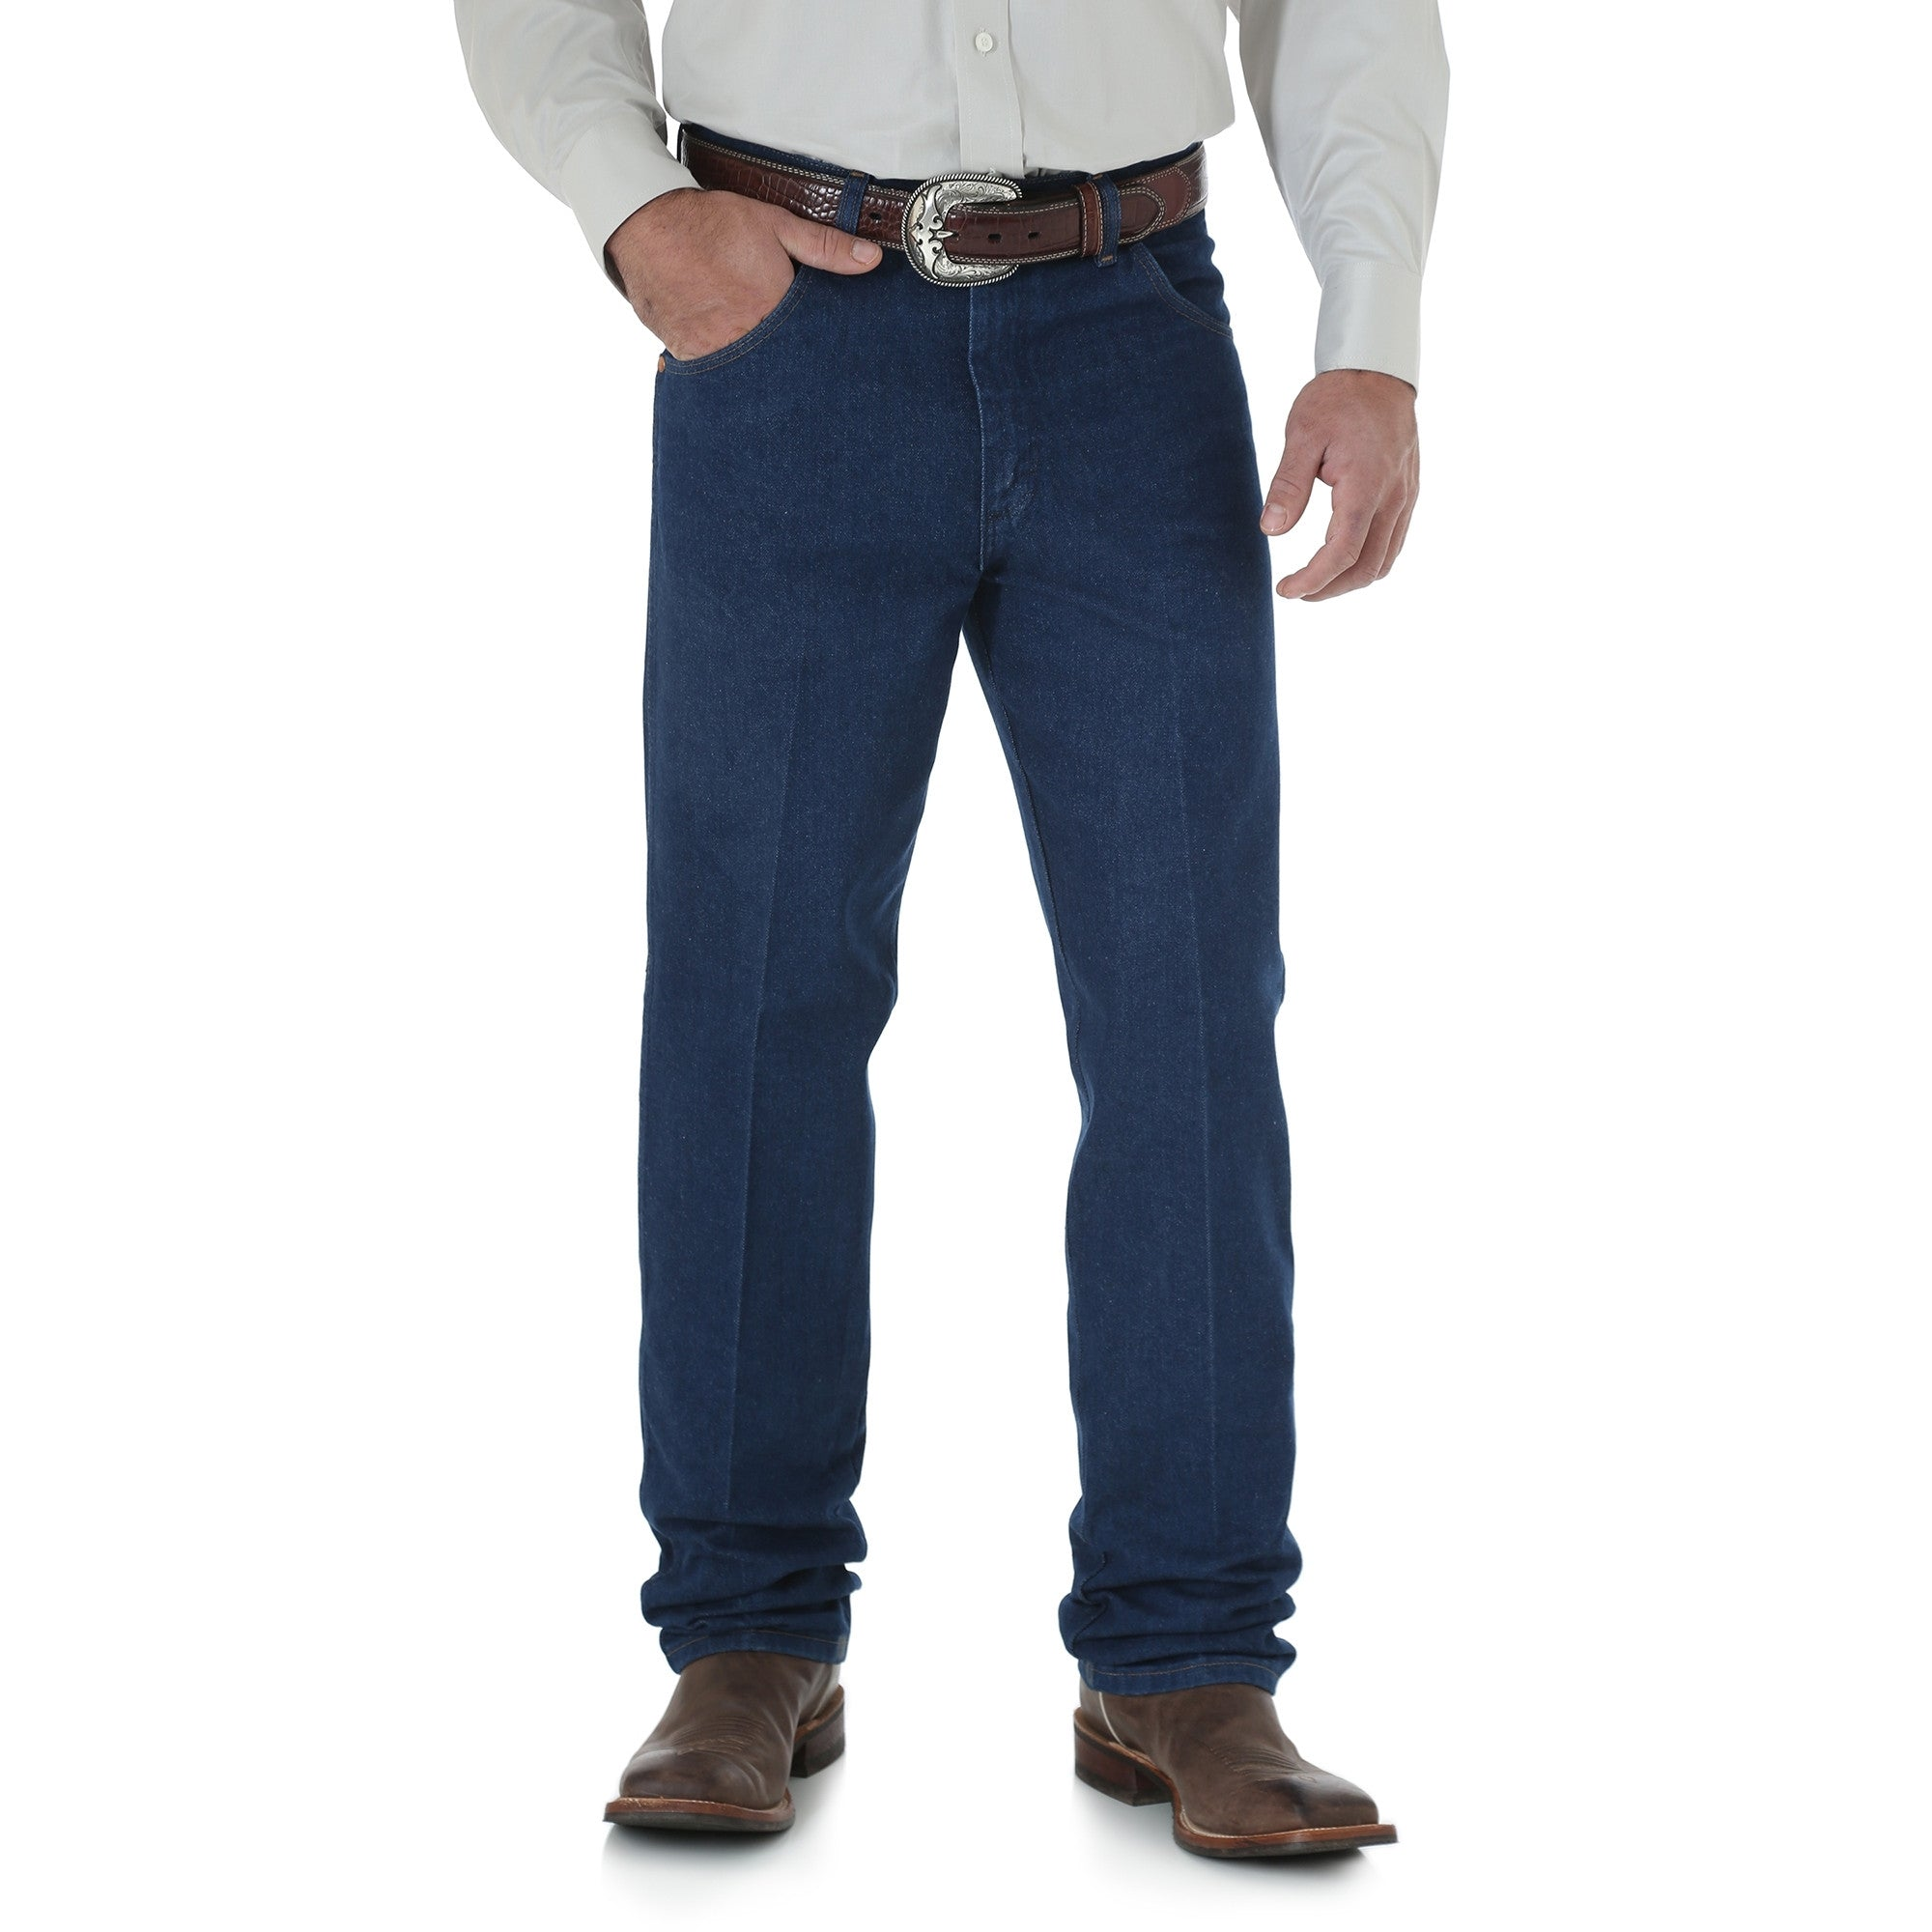 Men's Wrangler Cowboy Cut Relaxed Fit Jean #31MWZPW (Big and Tall)